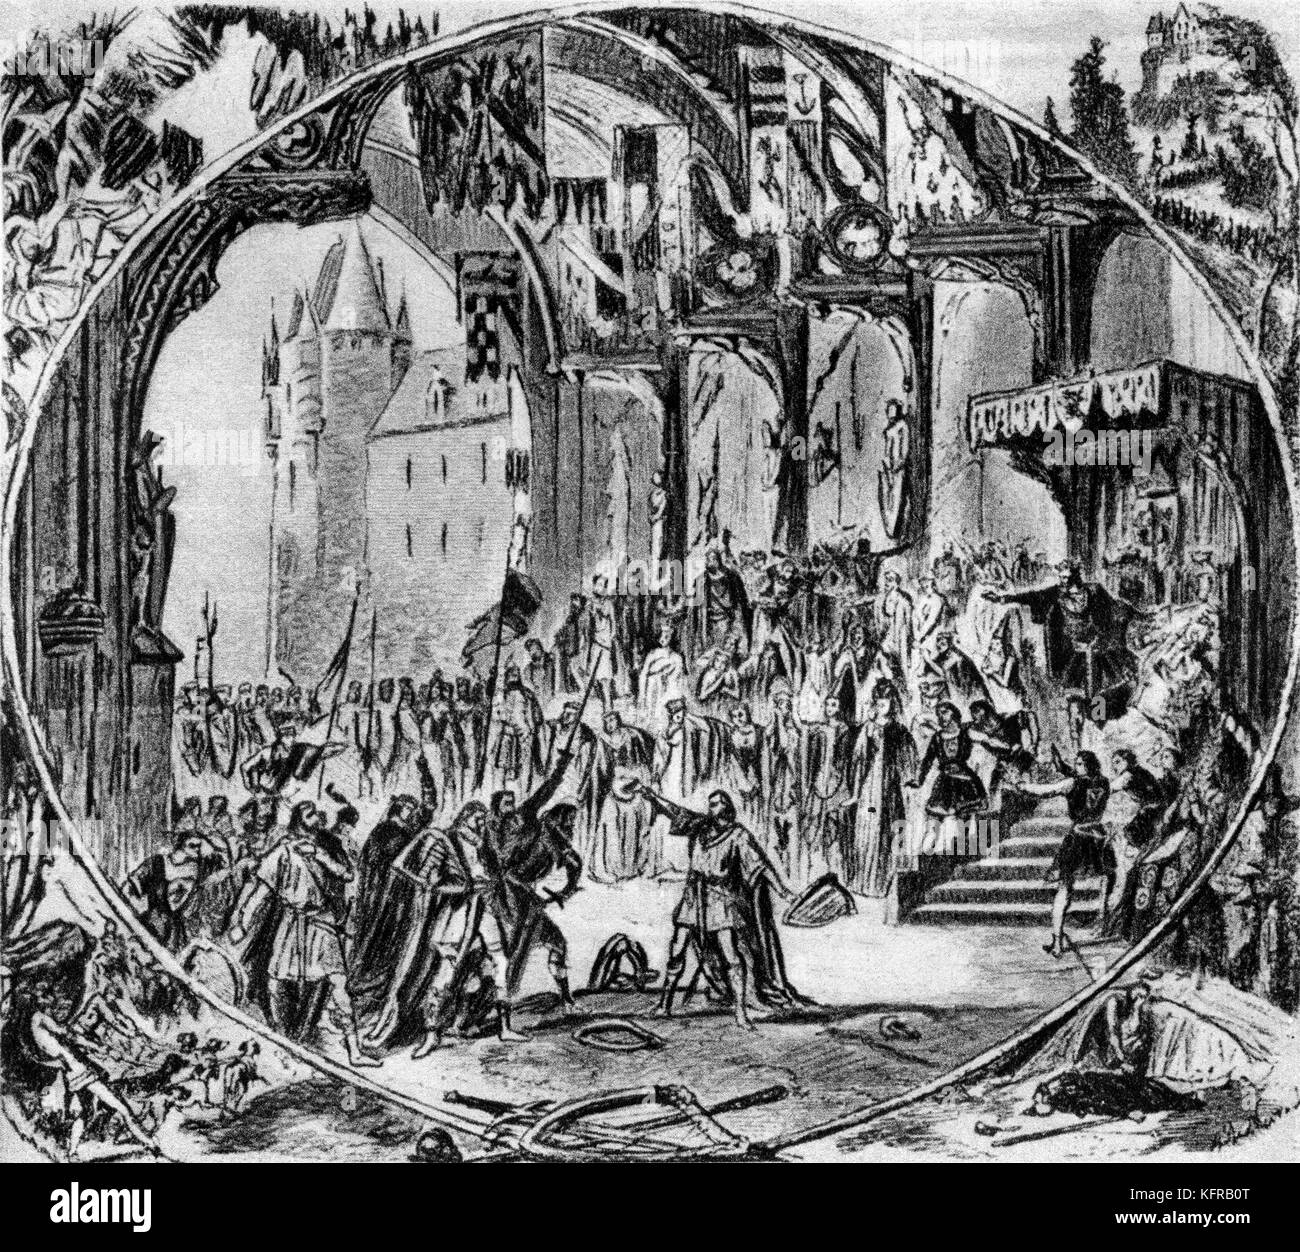 First performance of Tannhäuser in Paris, illustrated by Alphonse-Marie-Adolphe de Neuville. Tannhäuser, - Stock Image